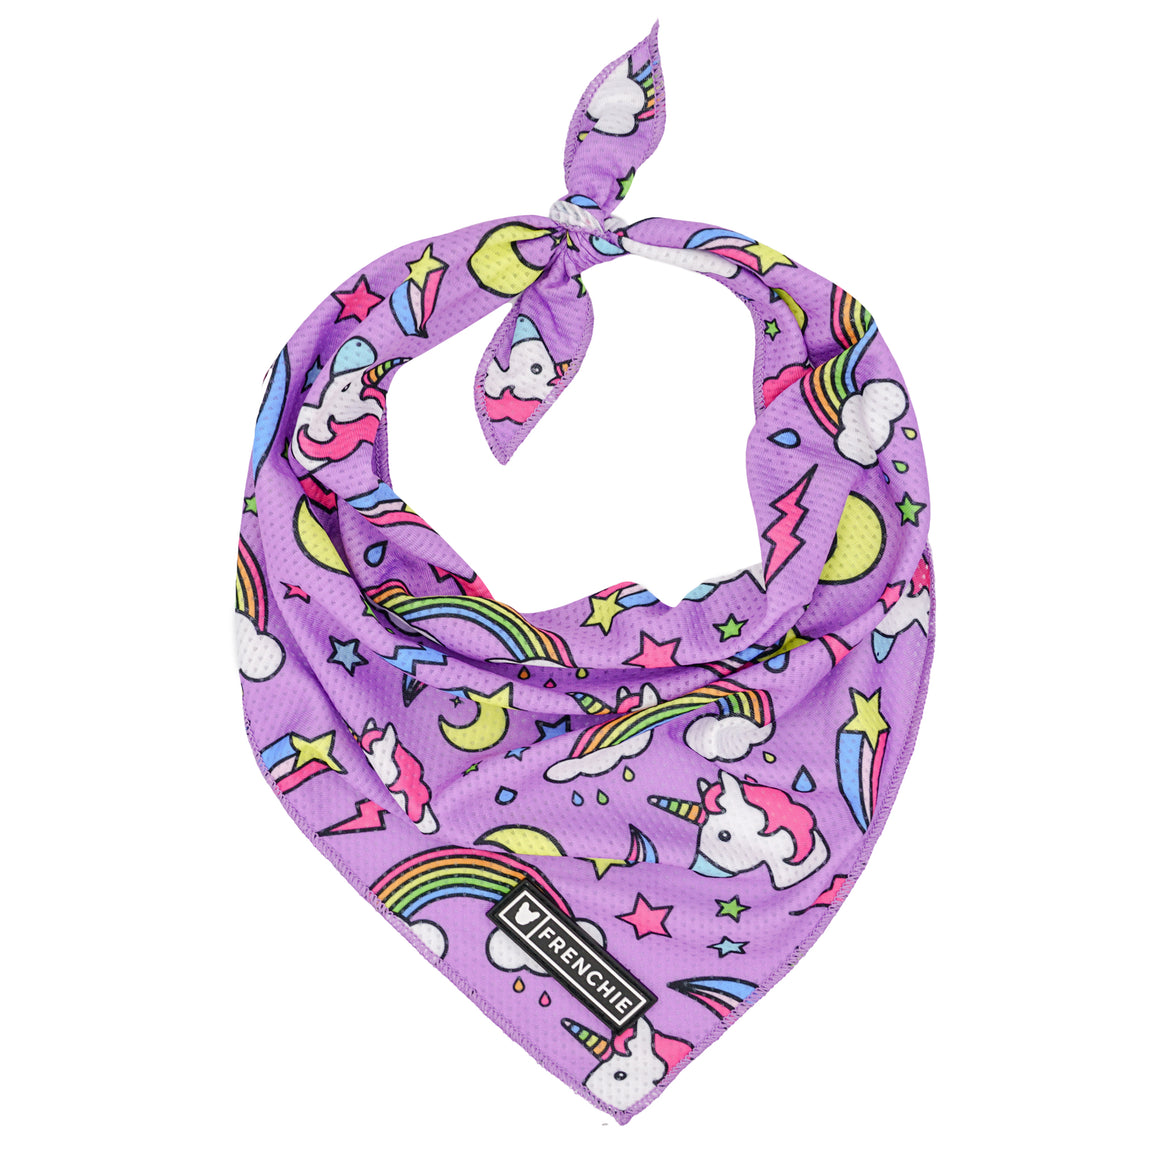 Frenchie Cooling Bandana - Purple Magical Unicorn - Frenchie Bulldog - Shop Harnesses for French Bulldogs - Shop French Bulldog Harness - Harnesses for Pugs